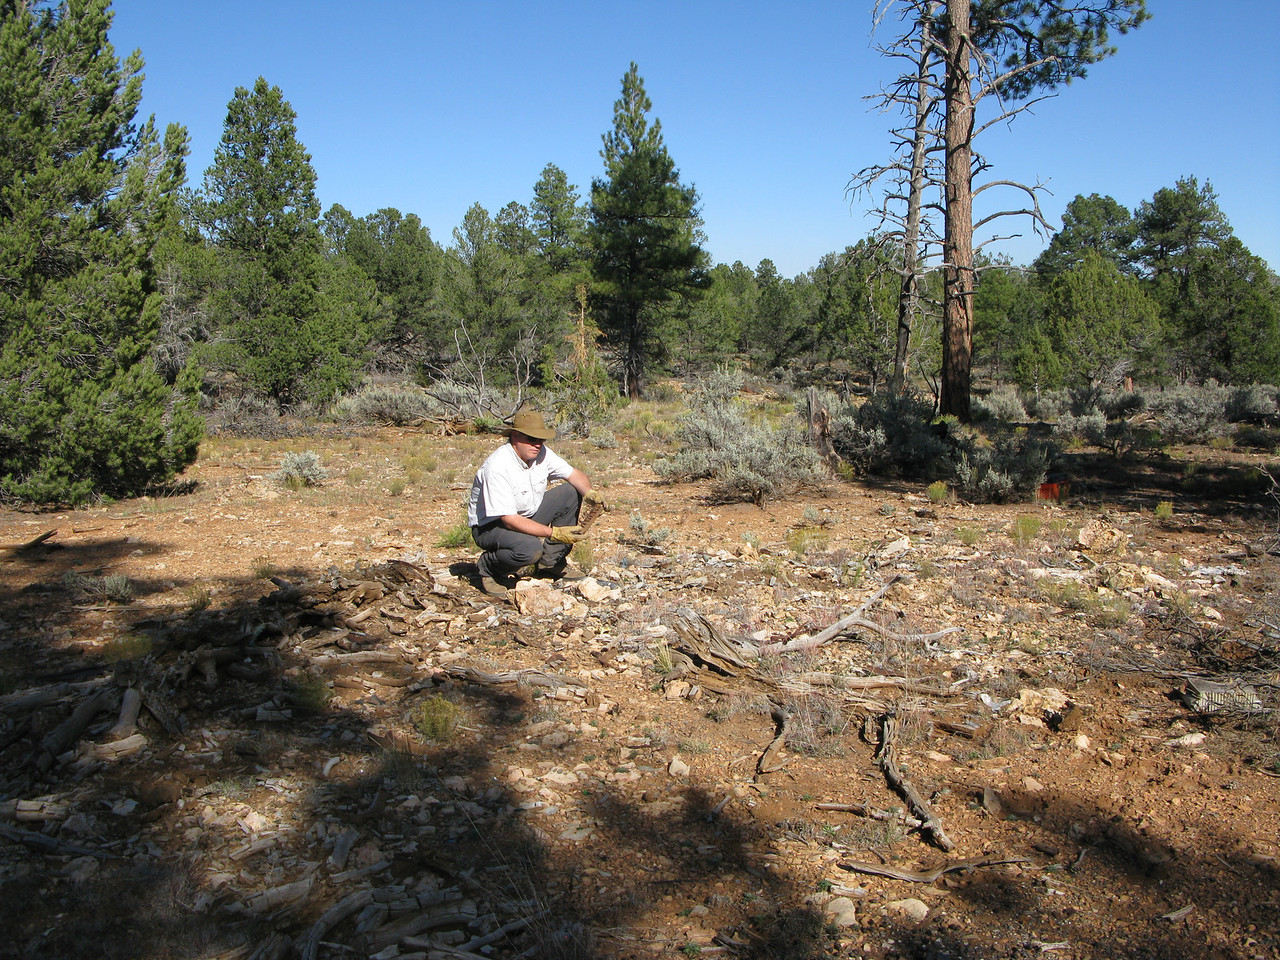 The burn area marks the location where the aircraft fuselage came to rest and caught fire. A number of cabin and cockpit components were found in this location.